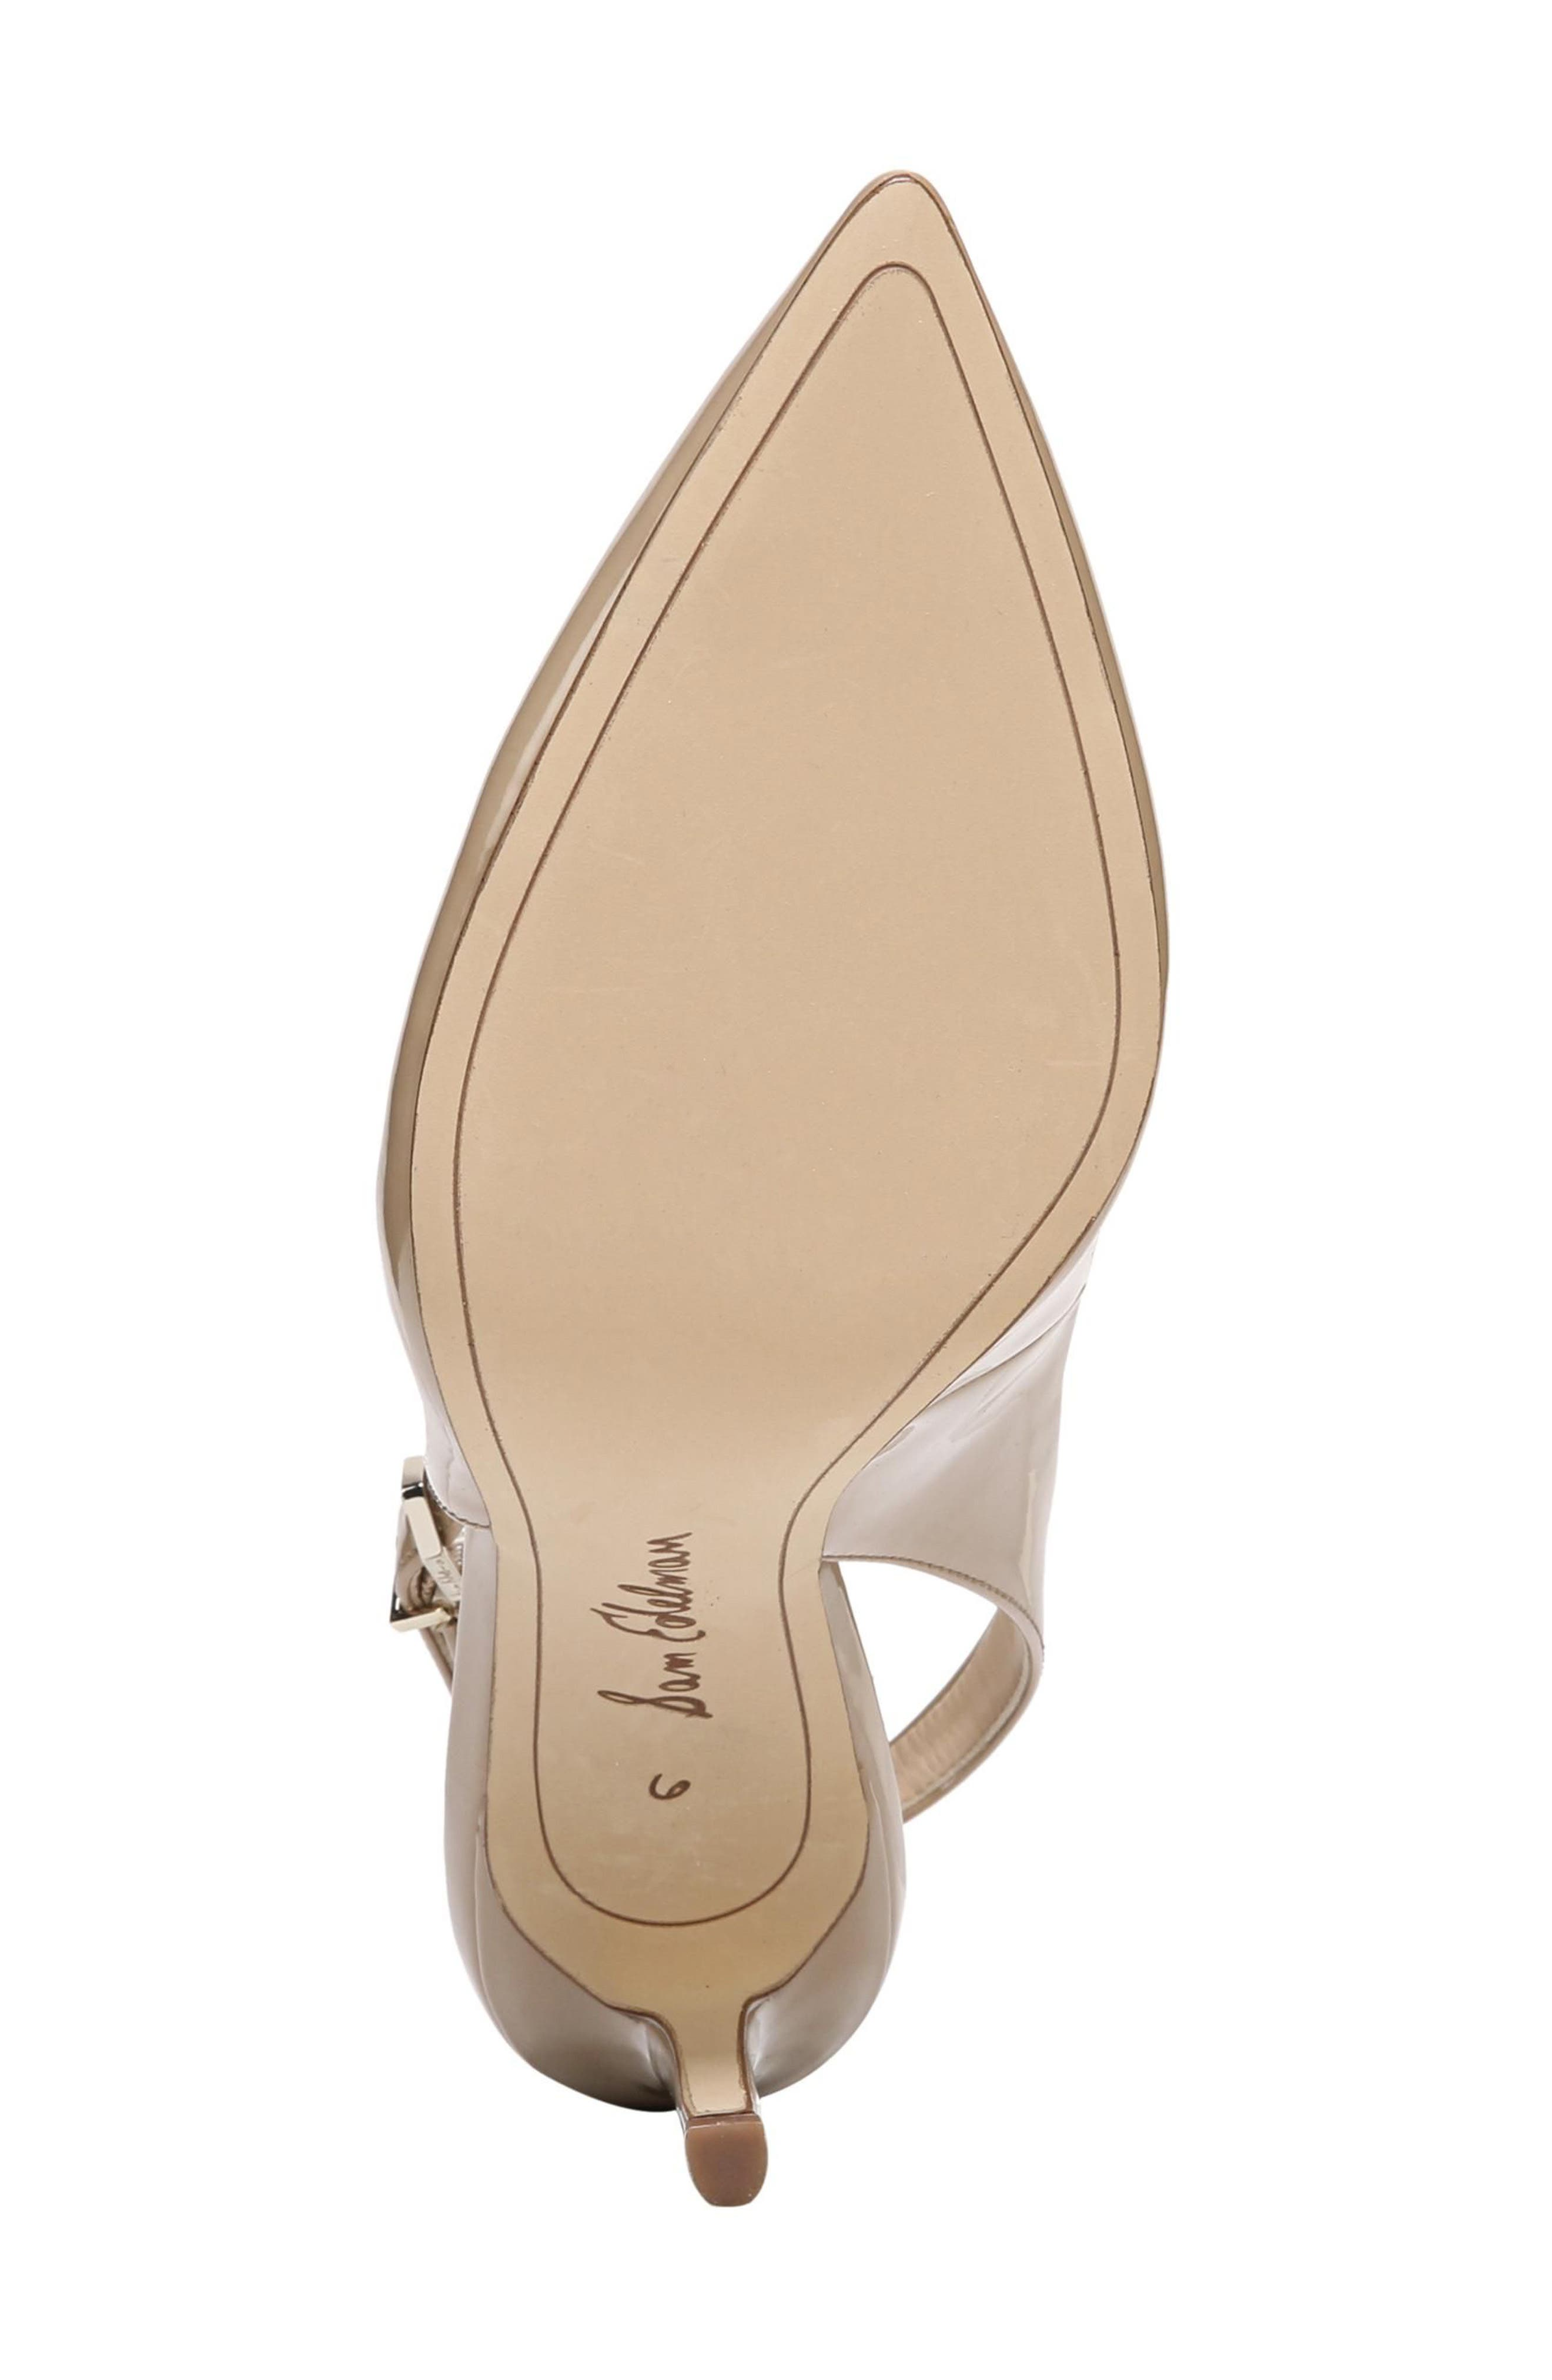 Hastings Slingback Pump,                             Alternate thumbnail 6, color,                             Classic Nude Patent Leather